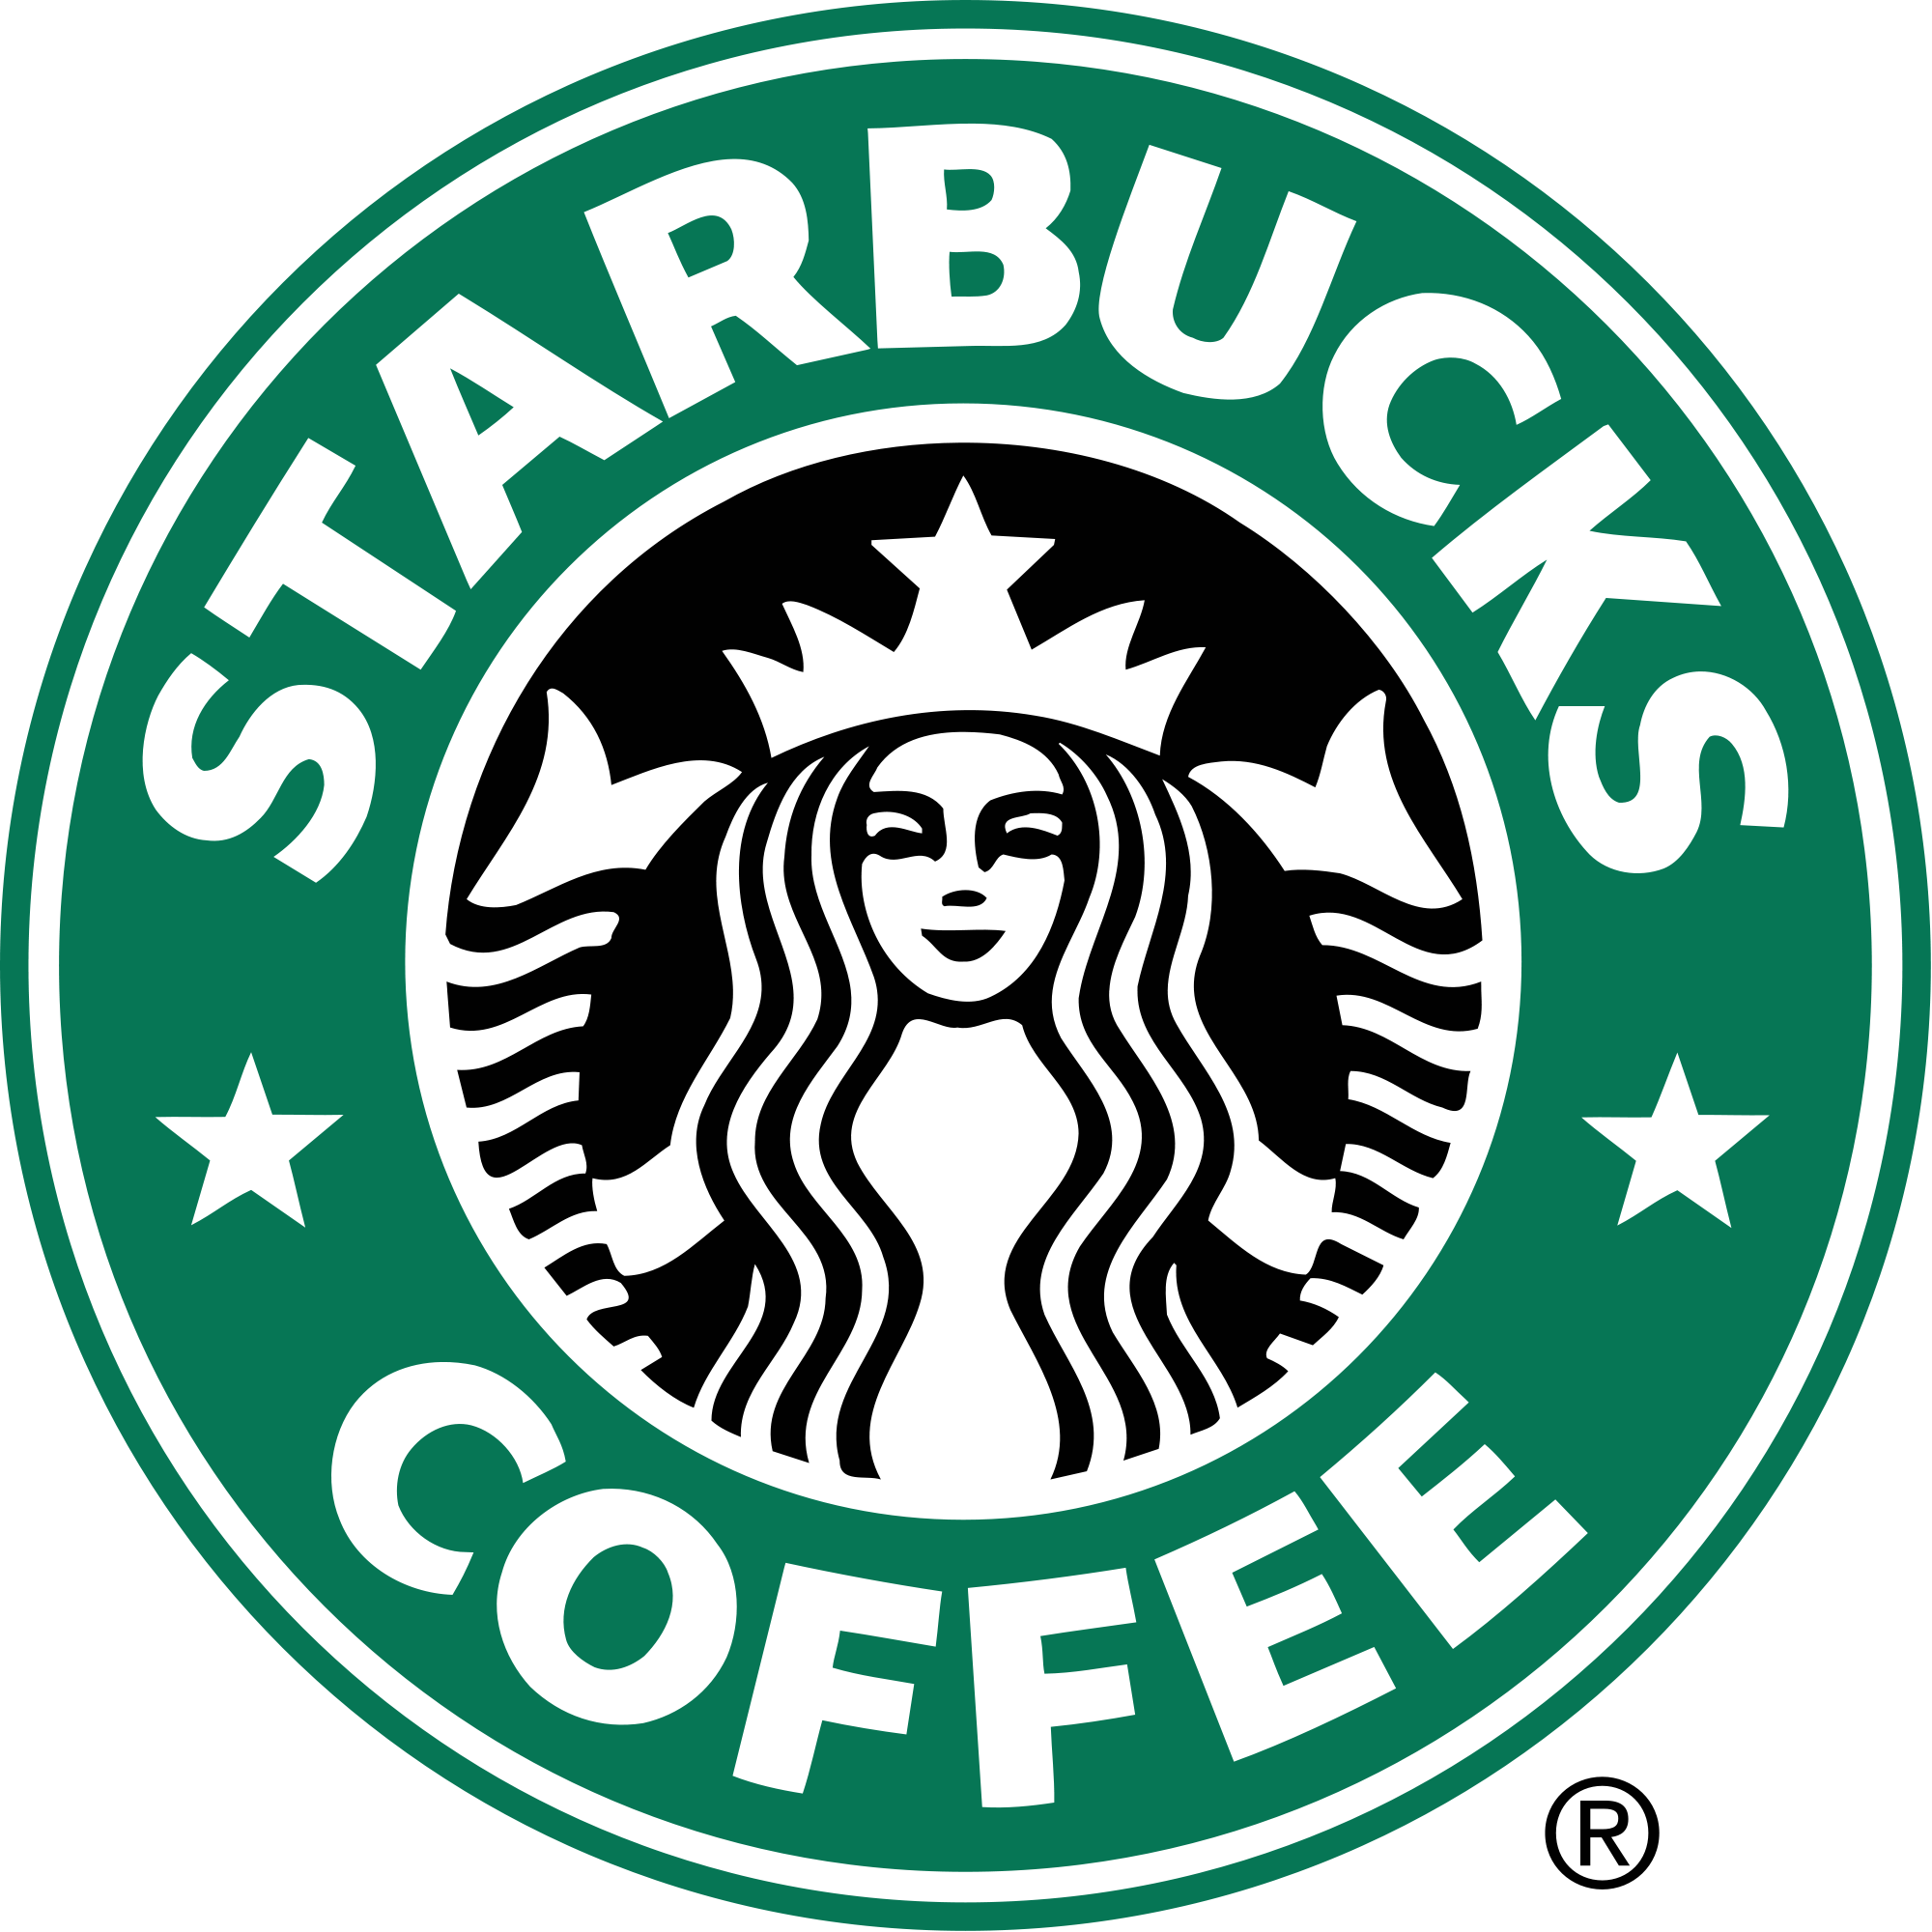 starbucks industry background Starbucks is the largest coffee industry in the world to analyze starbucks' coffee industry environment, the five forces model will give a clear picture of the position that the industry is in and help develop an optimum strategy for success in the industry.